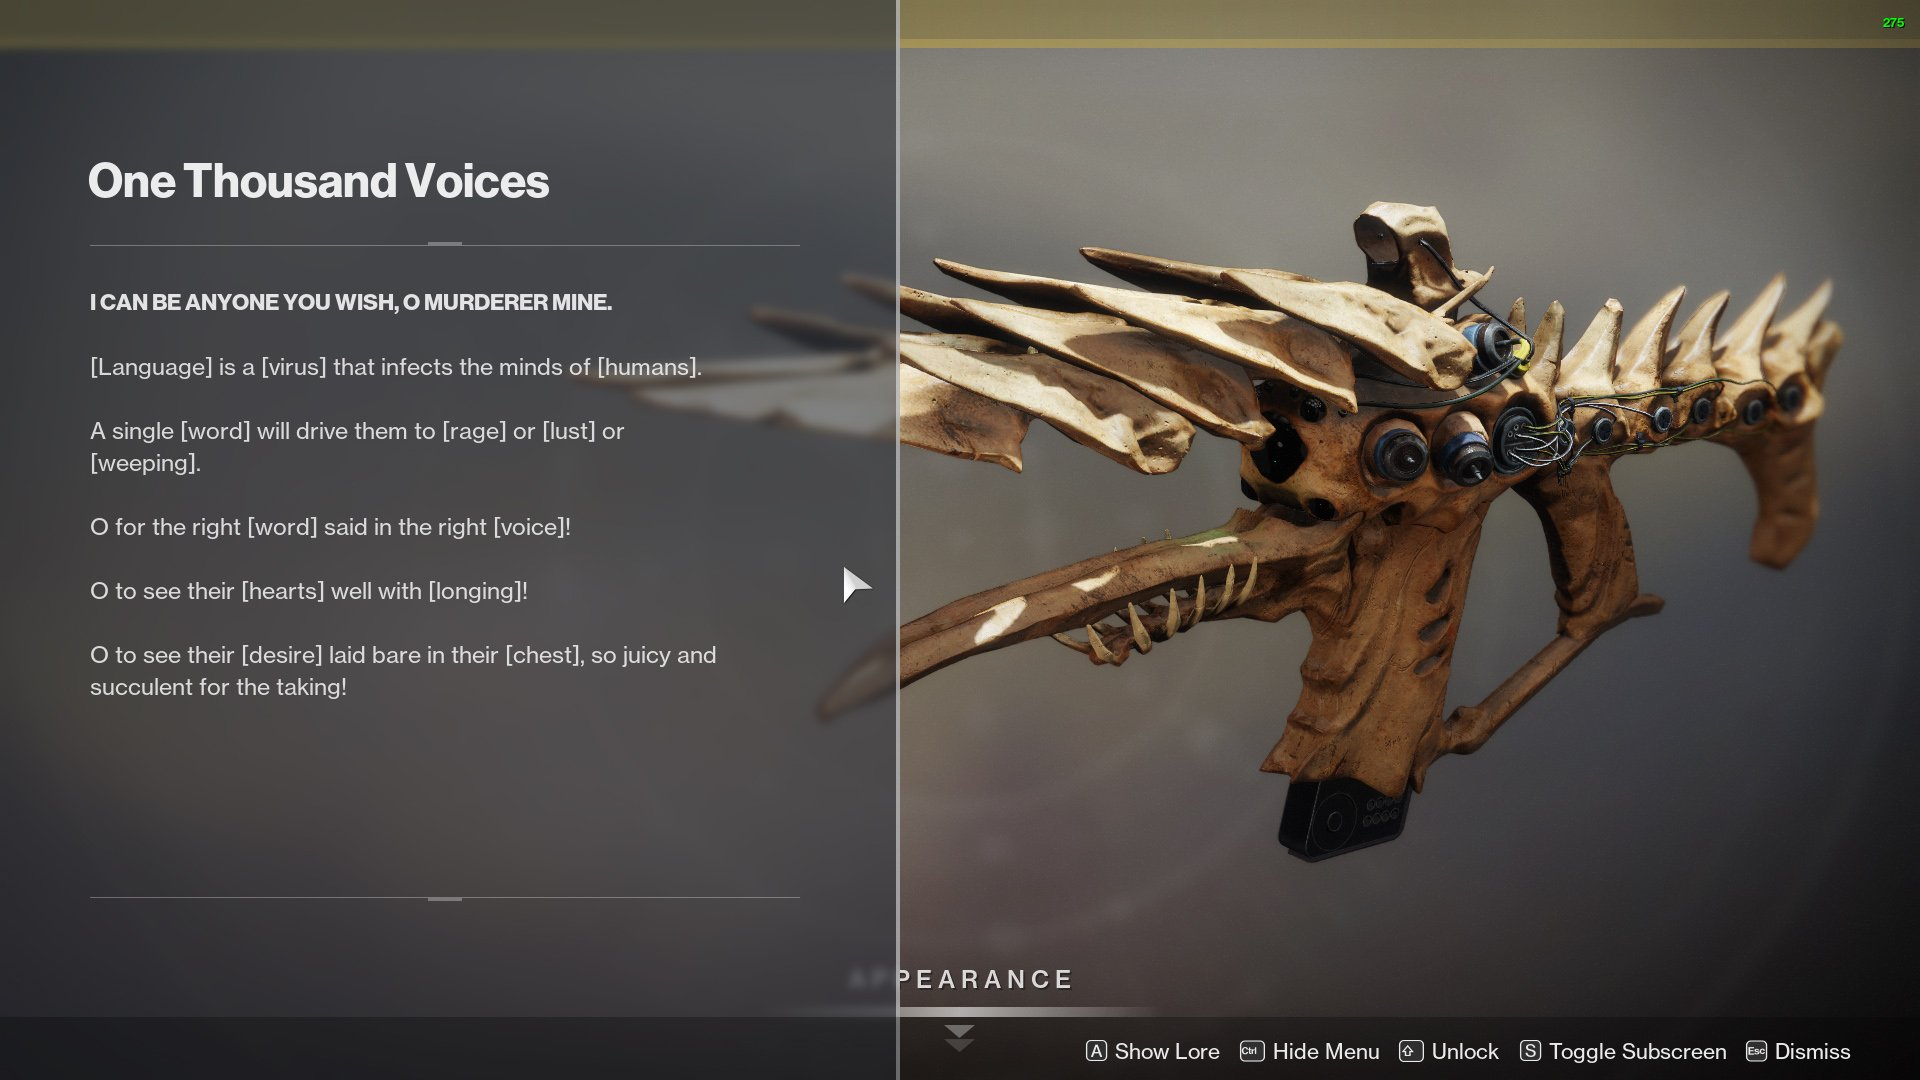 Destiny 2 One Thousand Voices lore